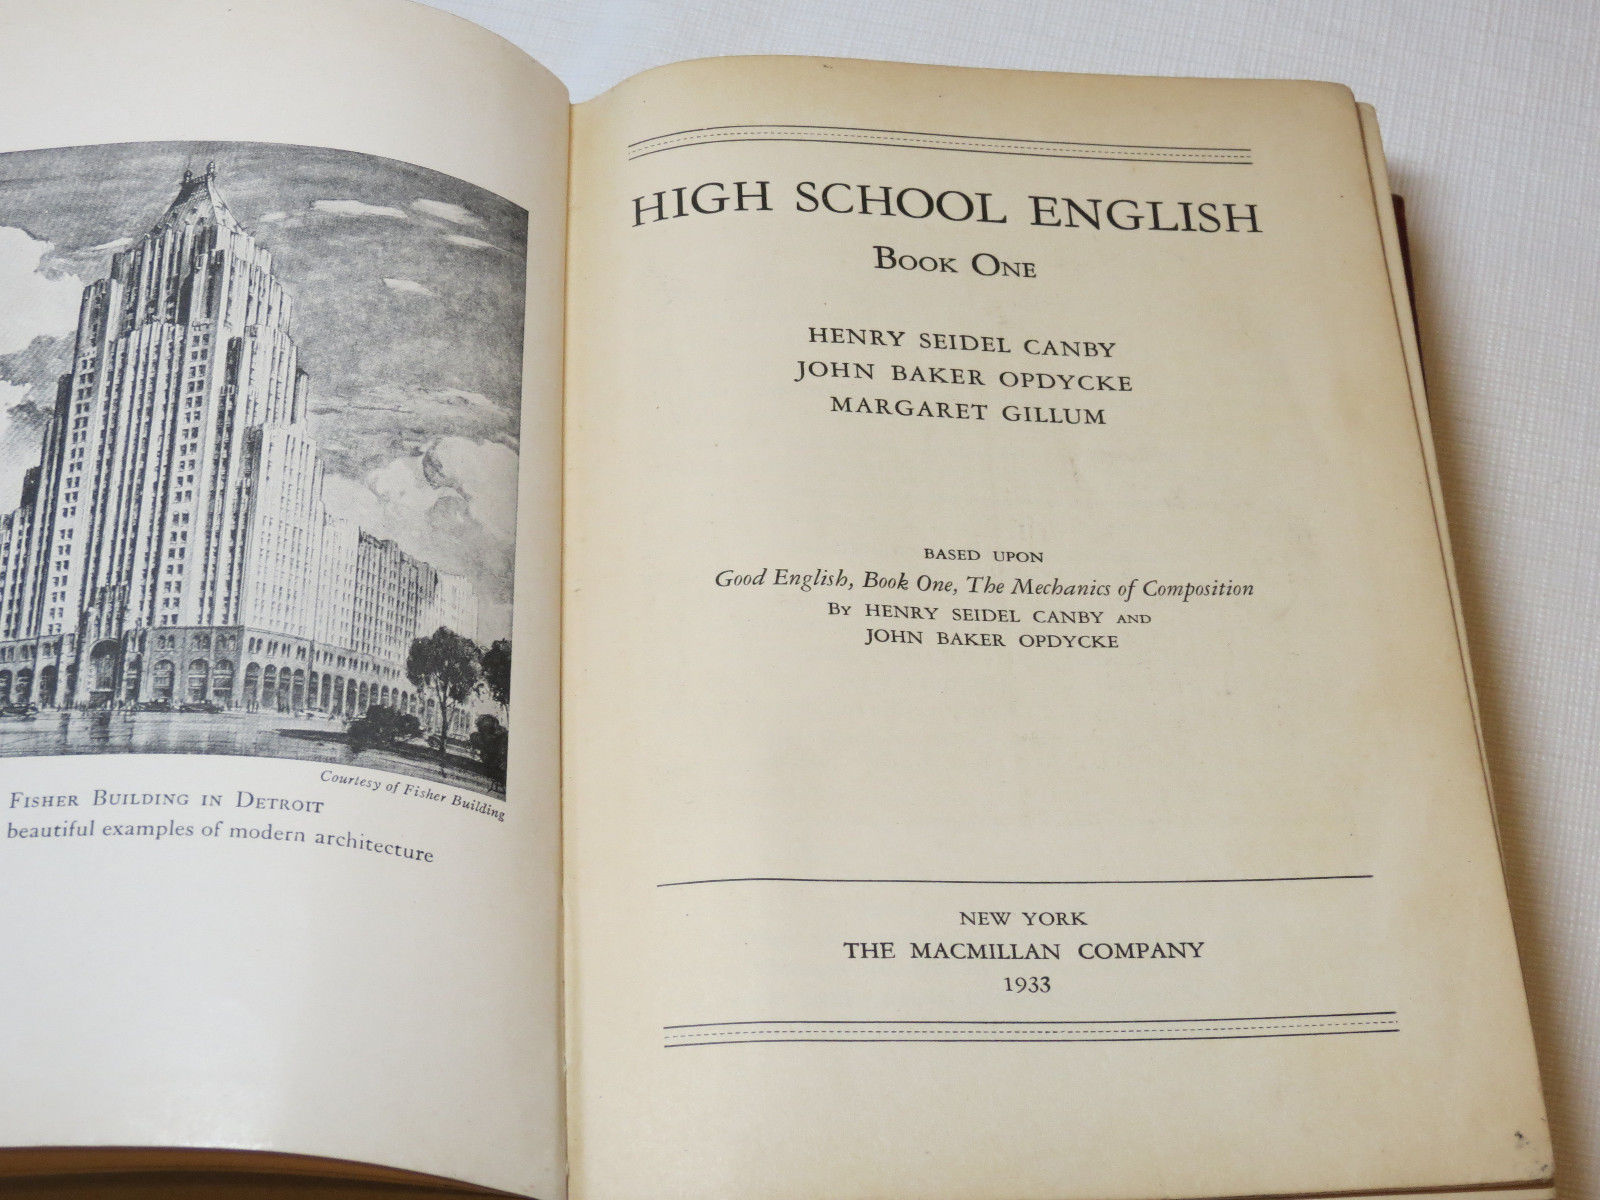 High School English Book One 1933 Henry Seidel Canby book without dust cover #%